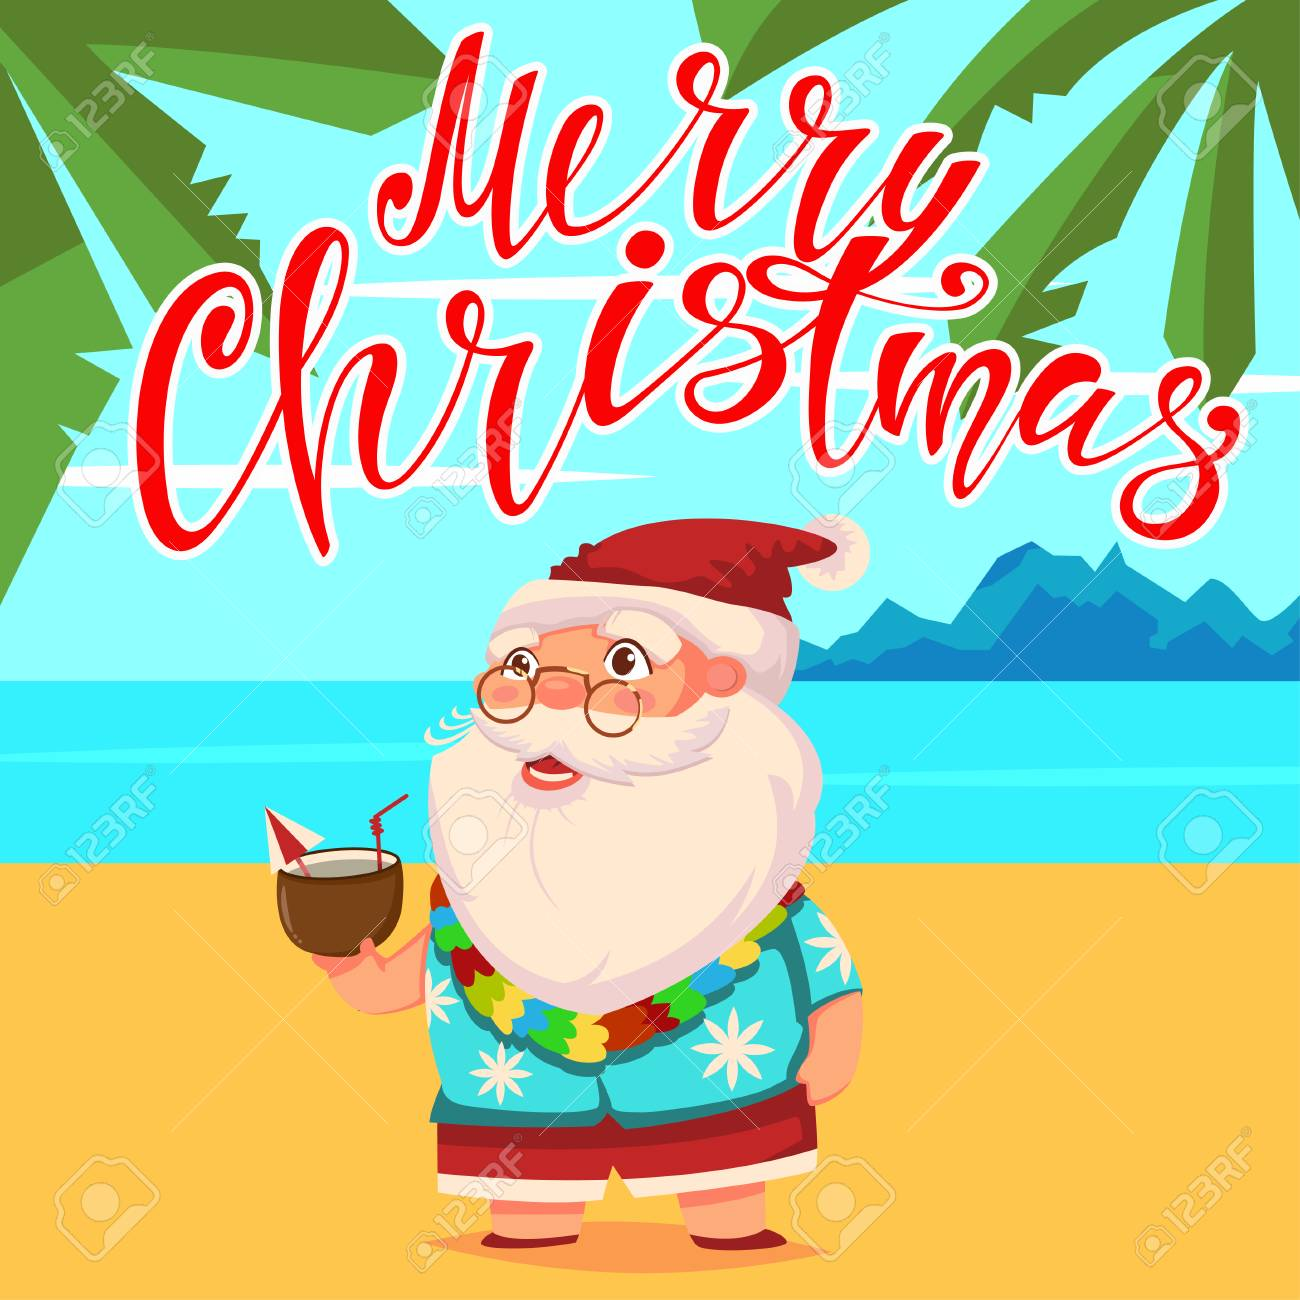 Summer Santa Claus on the beach with palm trees in shorts and...